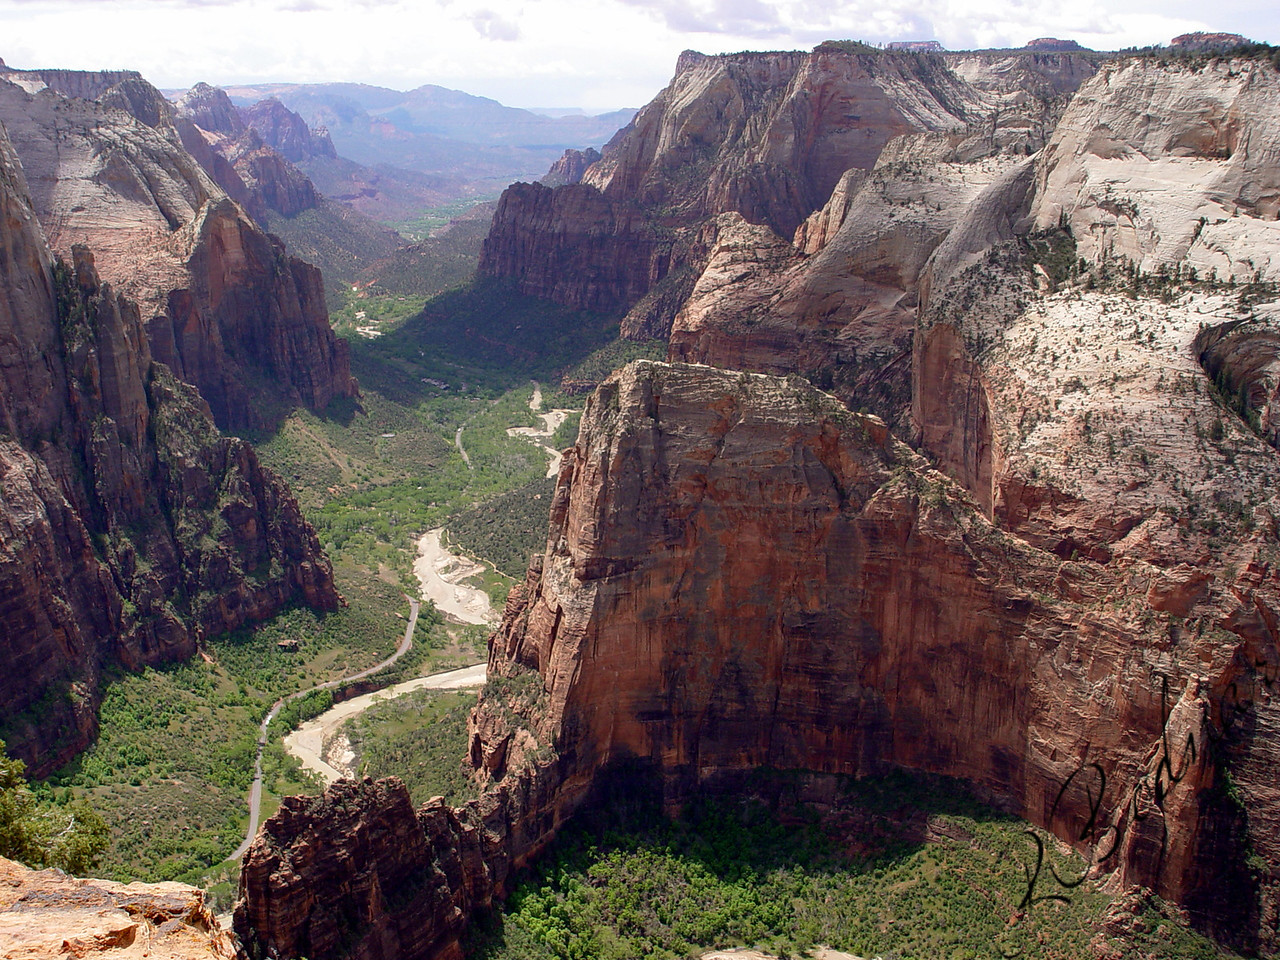 Photo By Robert Bodnar.........................................Angelslanding Zion National Park